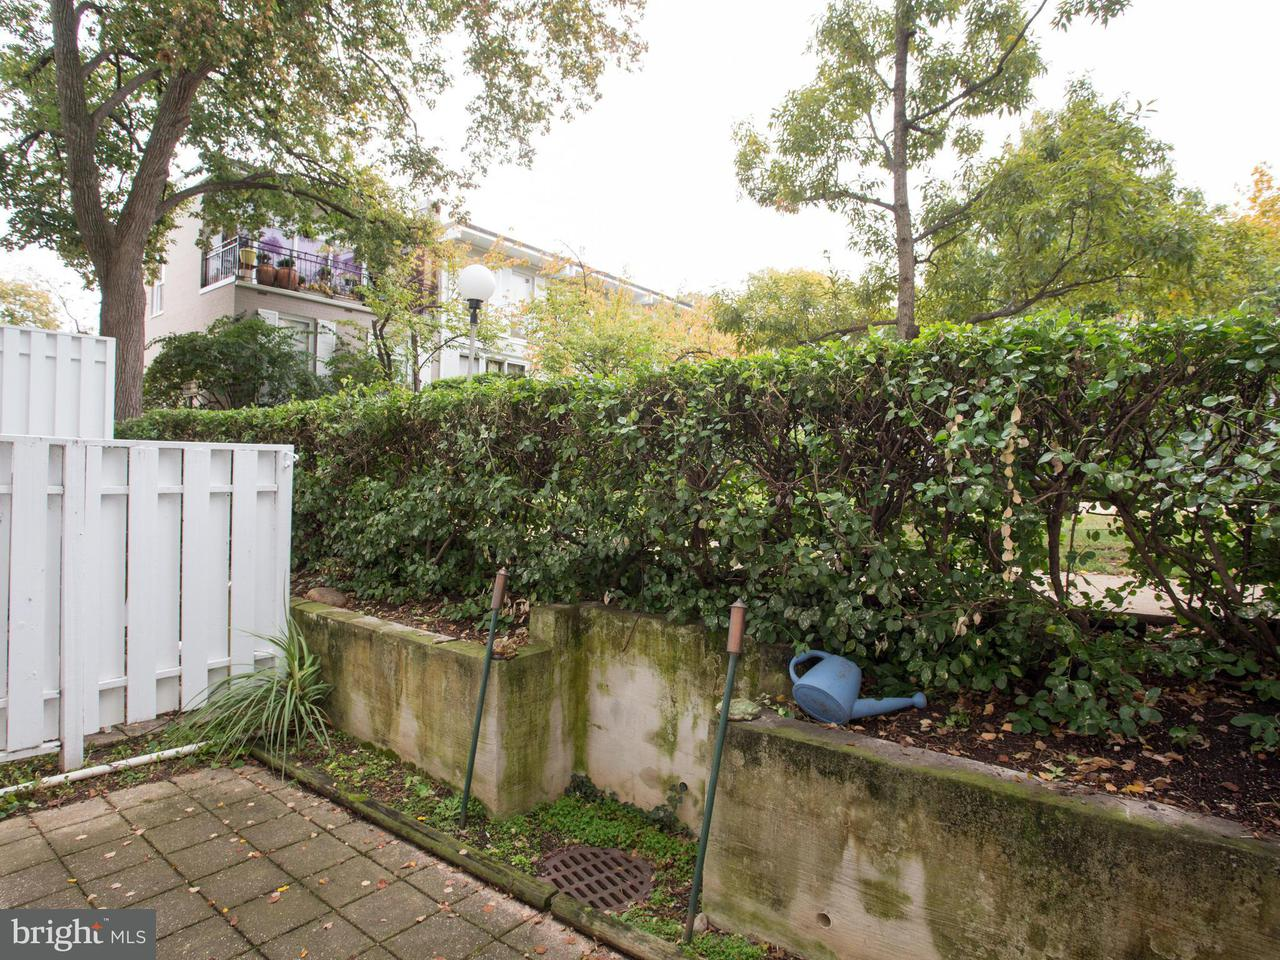 Additional photo for property listing at 160 G St Sw #146 160 G St Sw #146 Washington, District Of Columbia 20024 Verenigde Staten